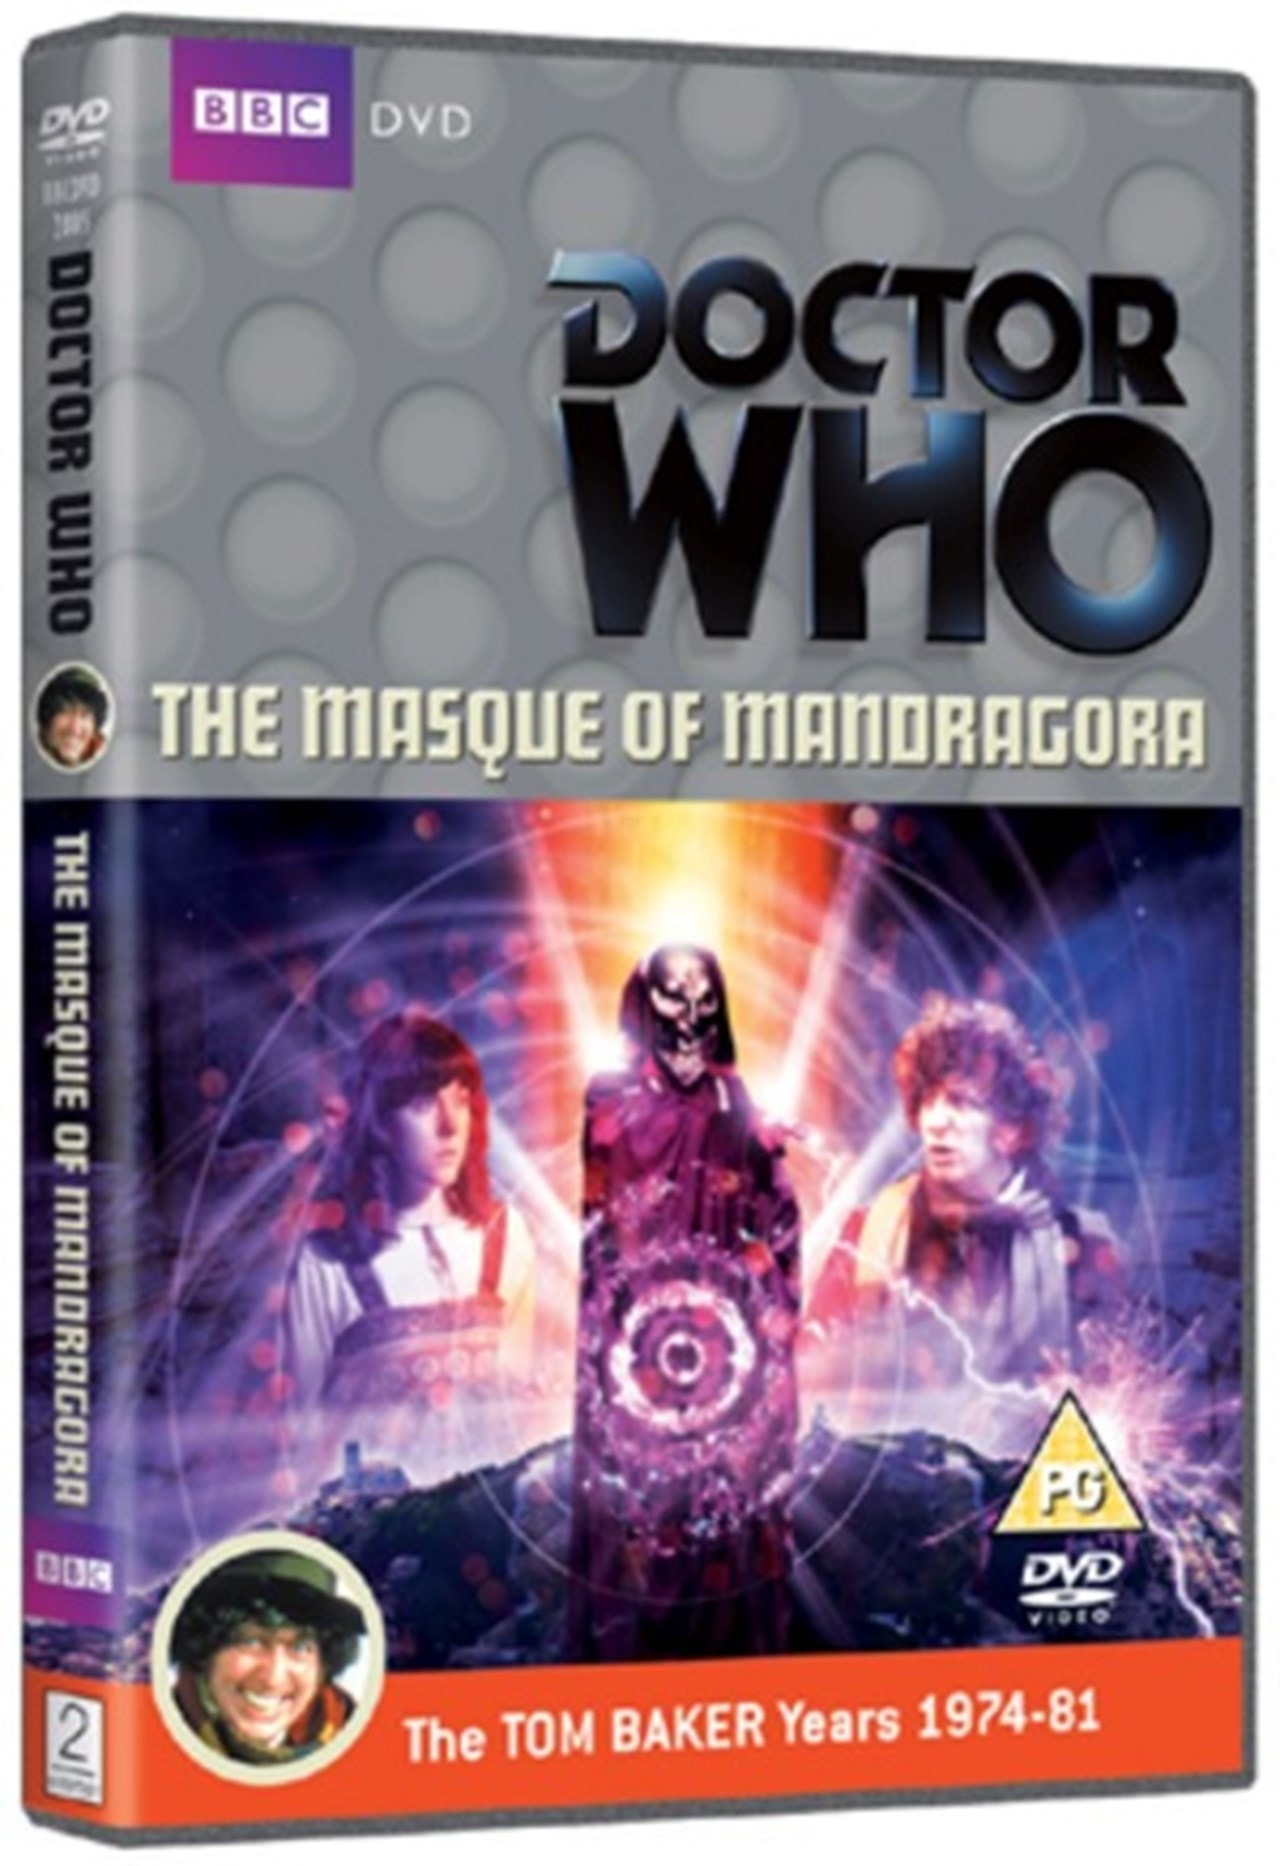 Doctor Who: The Masque of Mandragora - 1